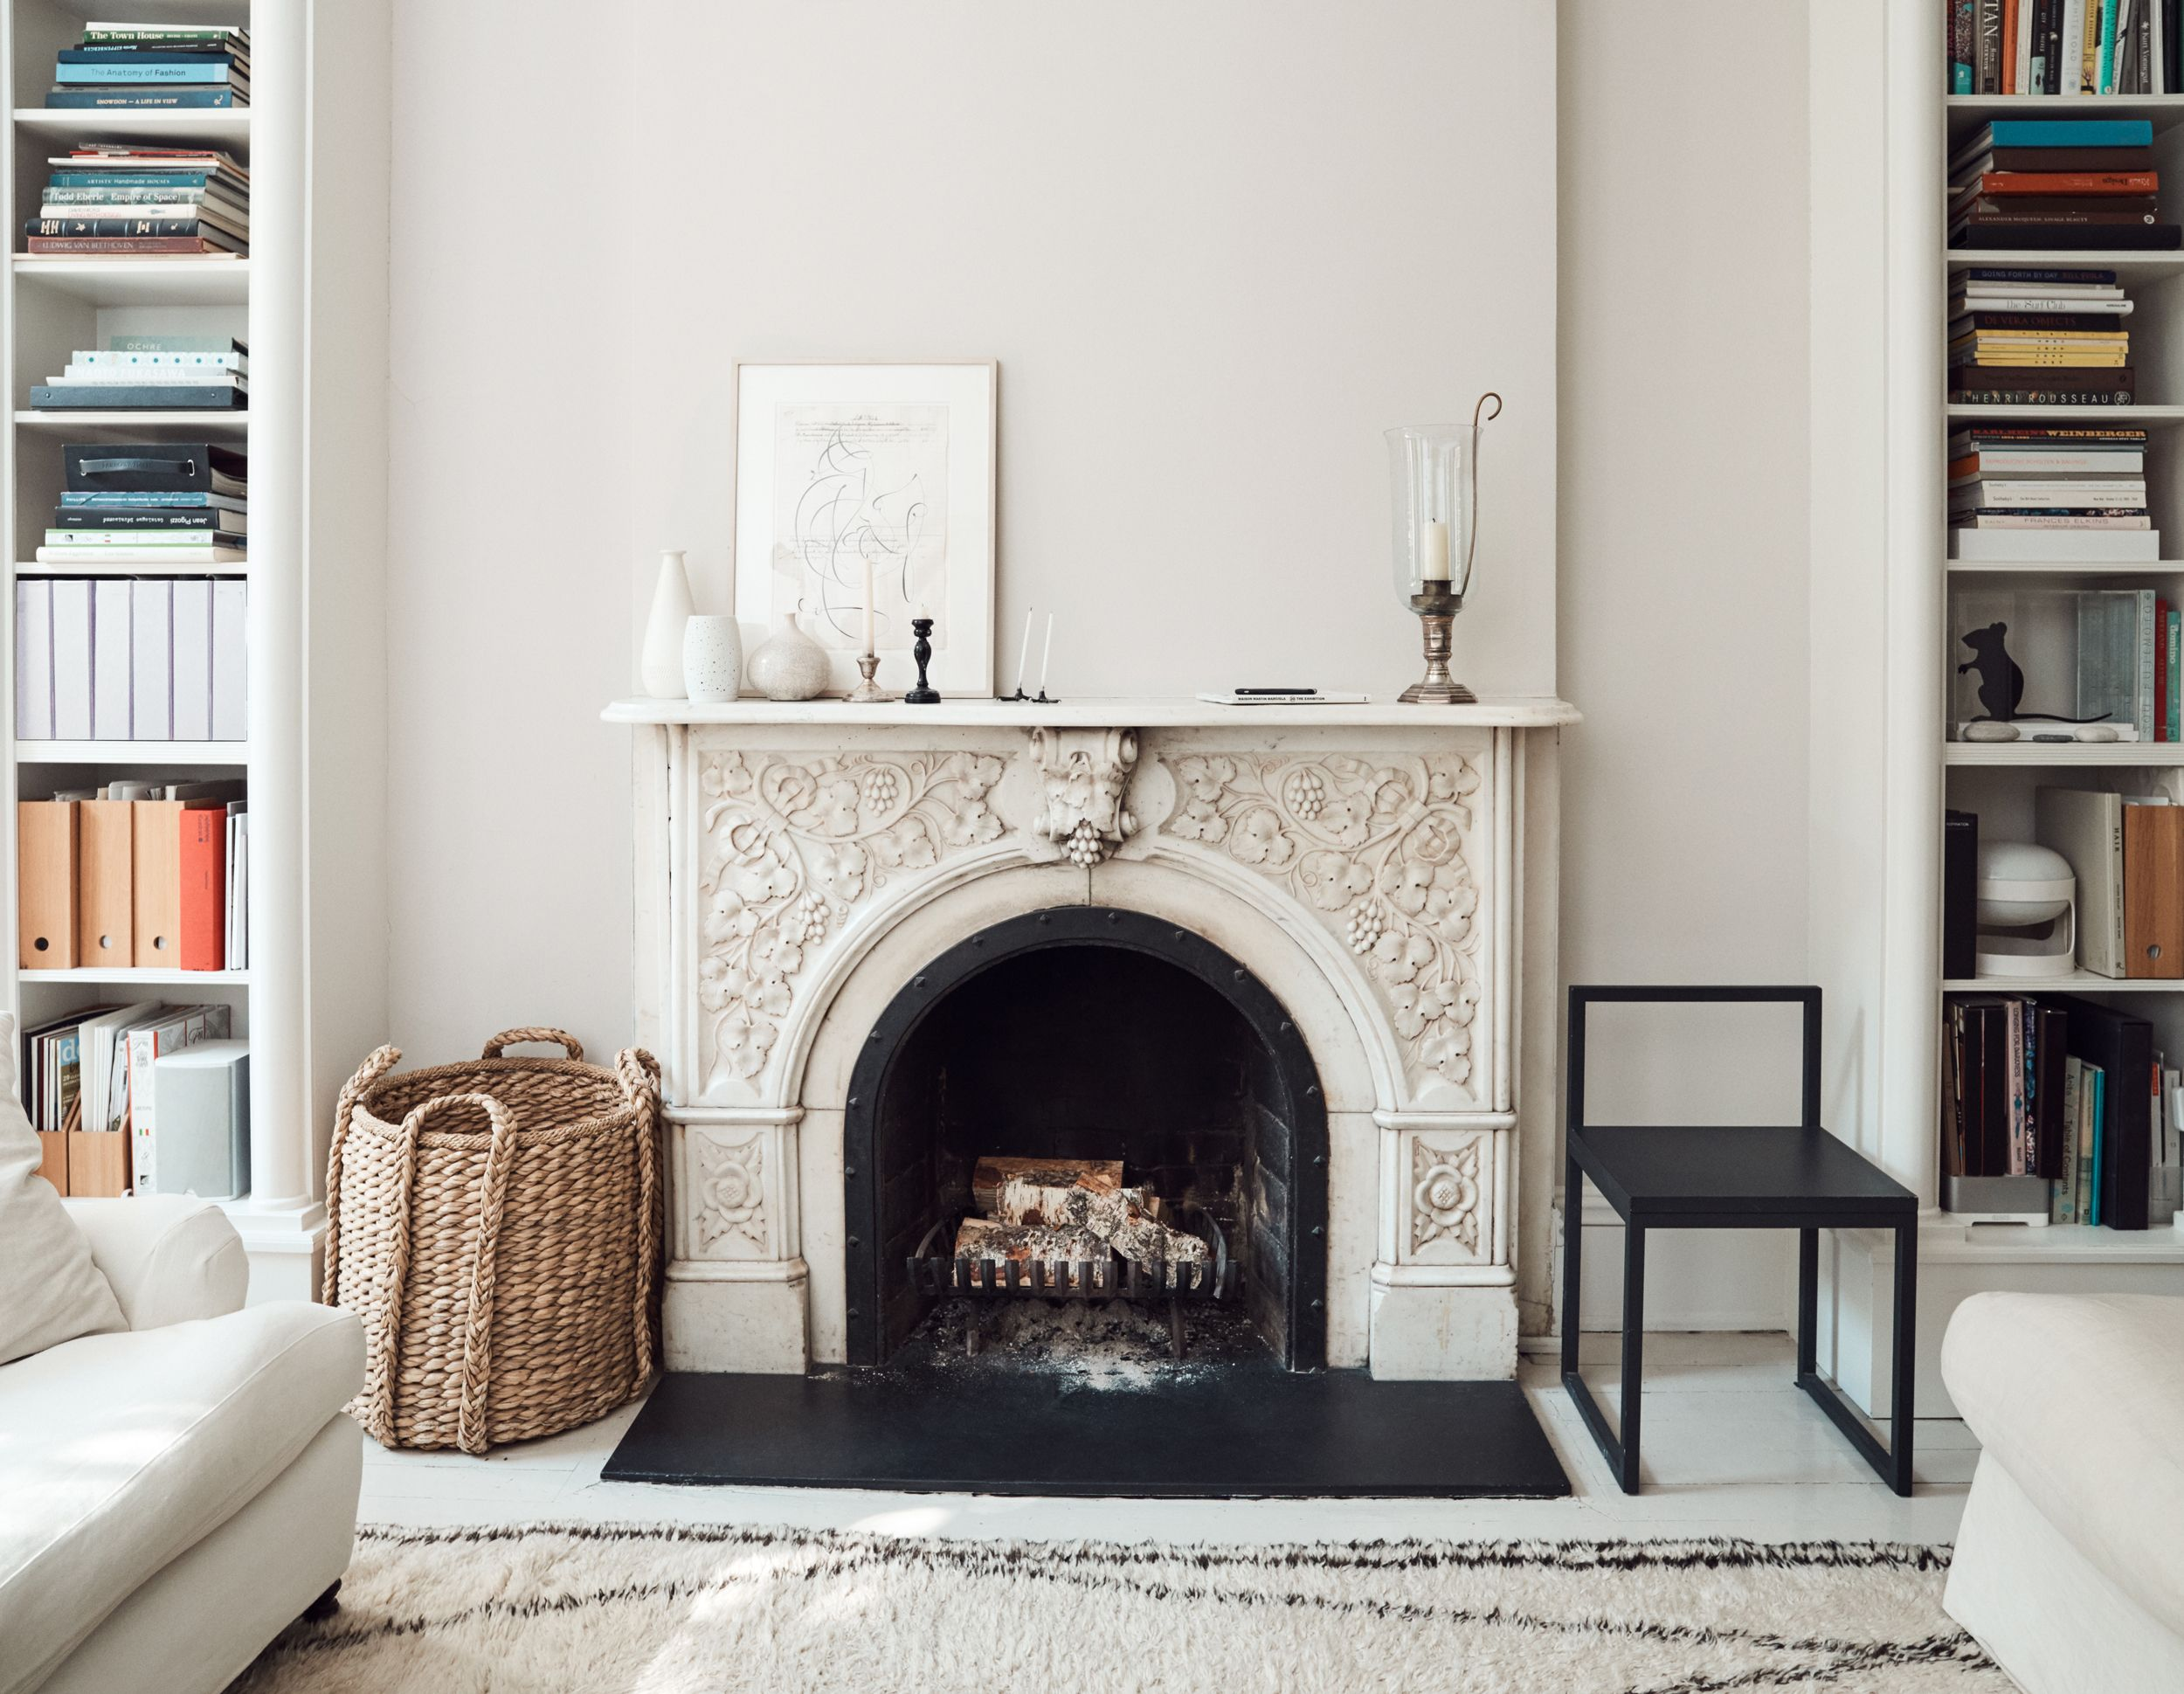 Tom Delevan S New York Apartment Home Sweet Home Home